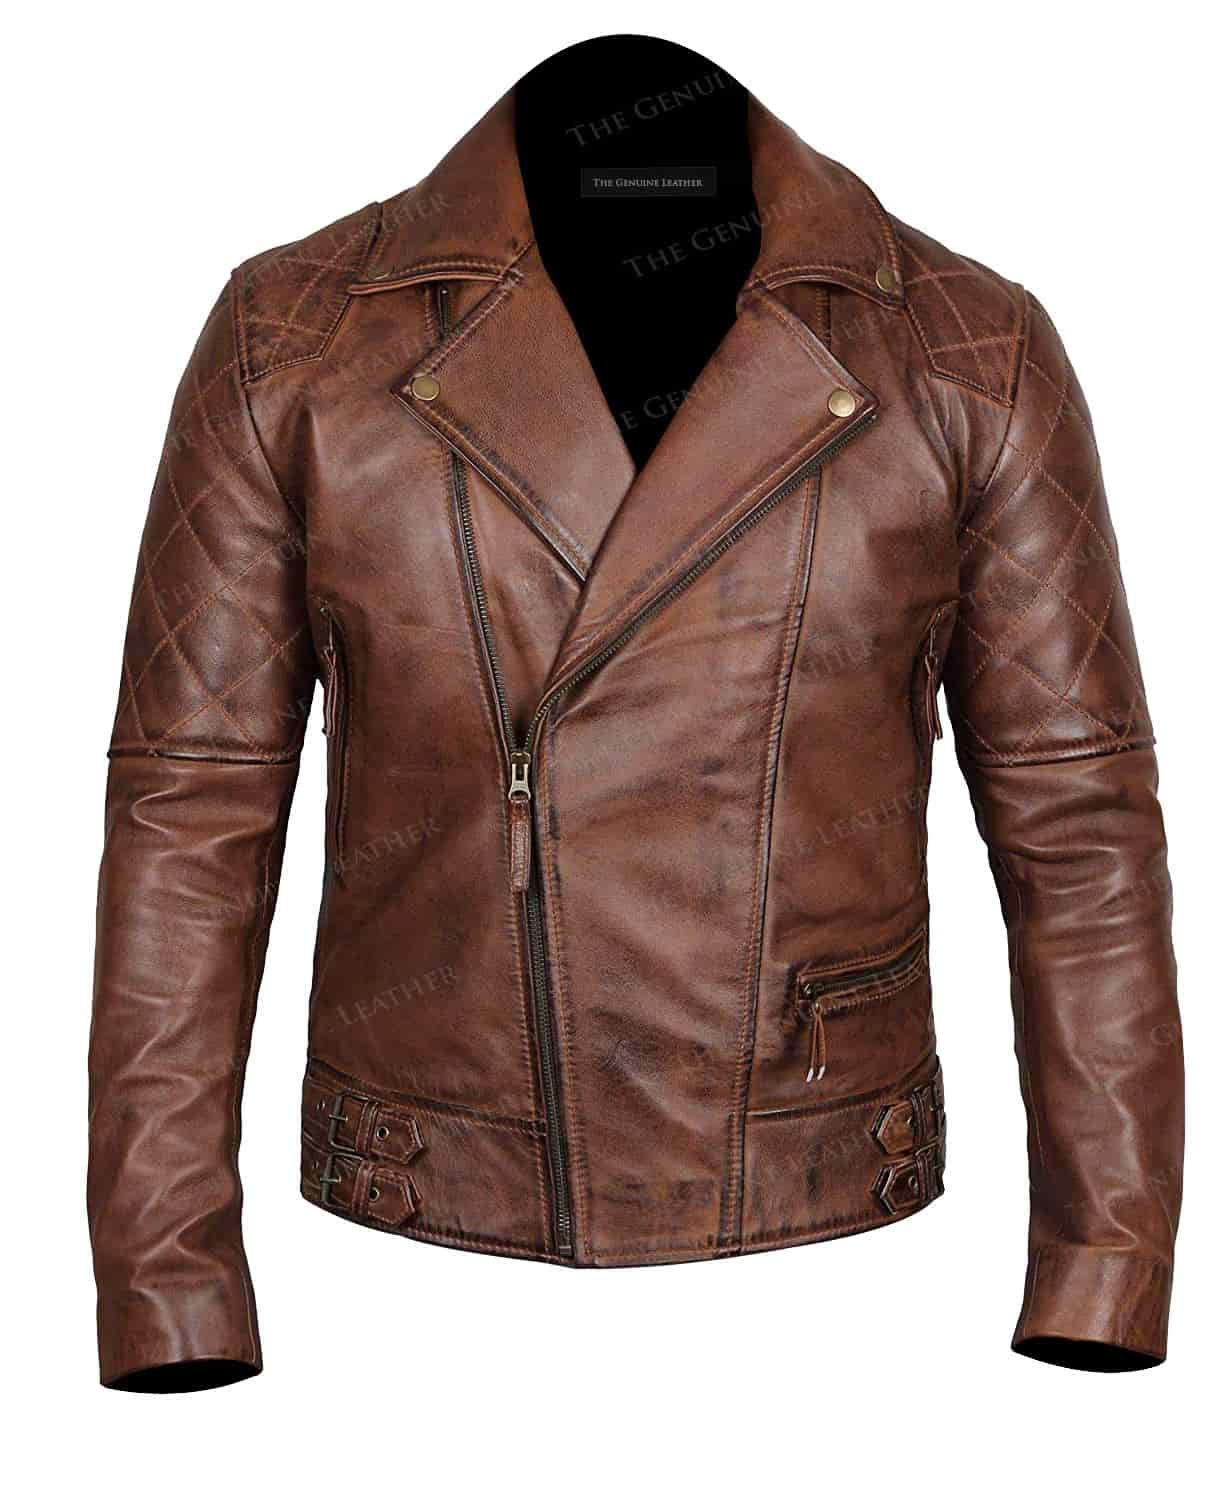 Mens Brown Biker Leather Jacket Cafe racer leather